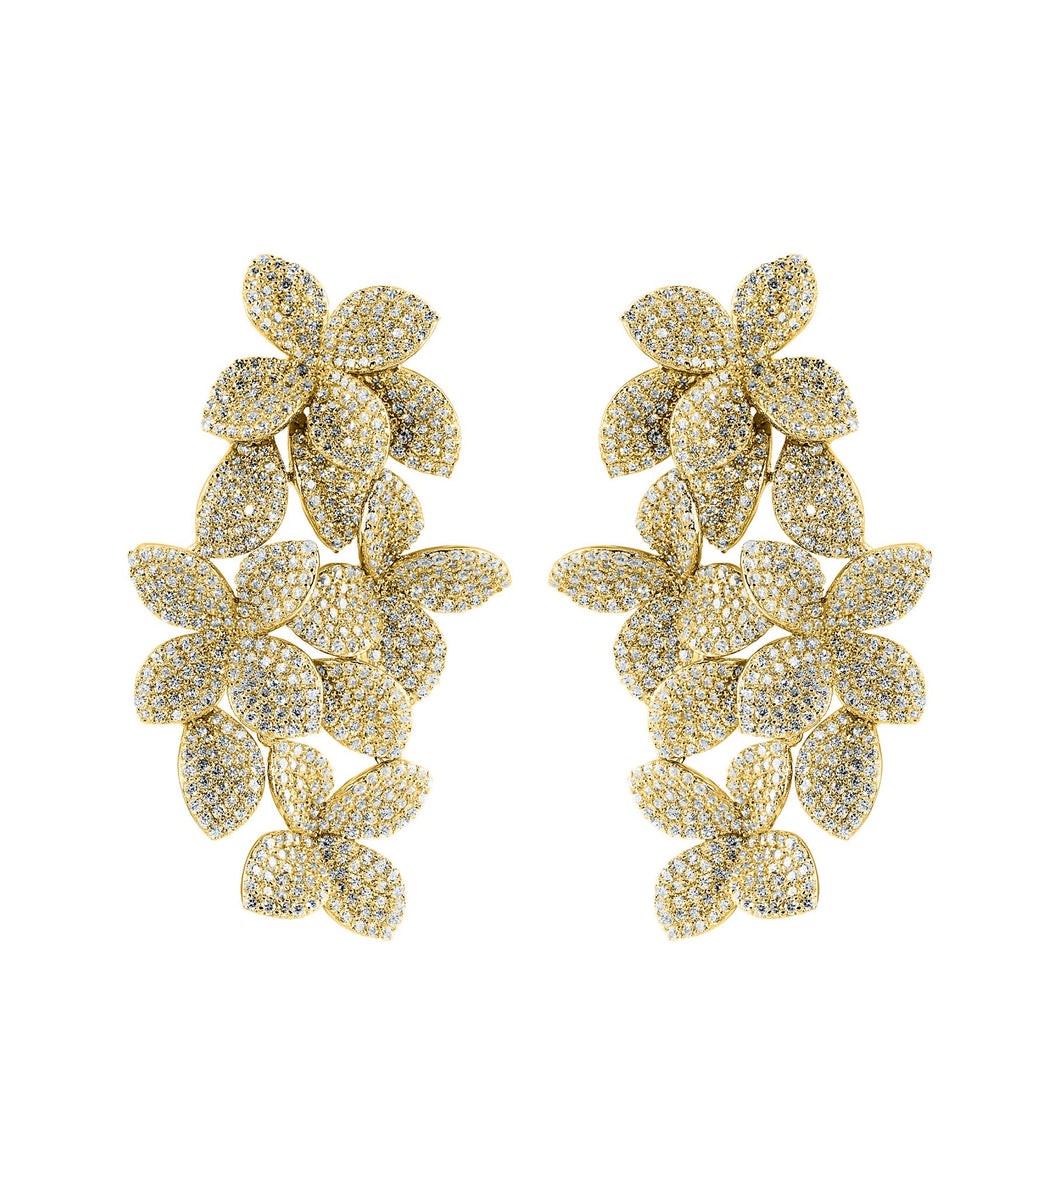 BOQUET EARRINGS